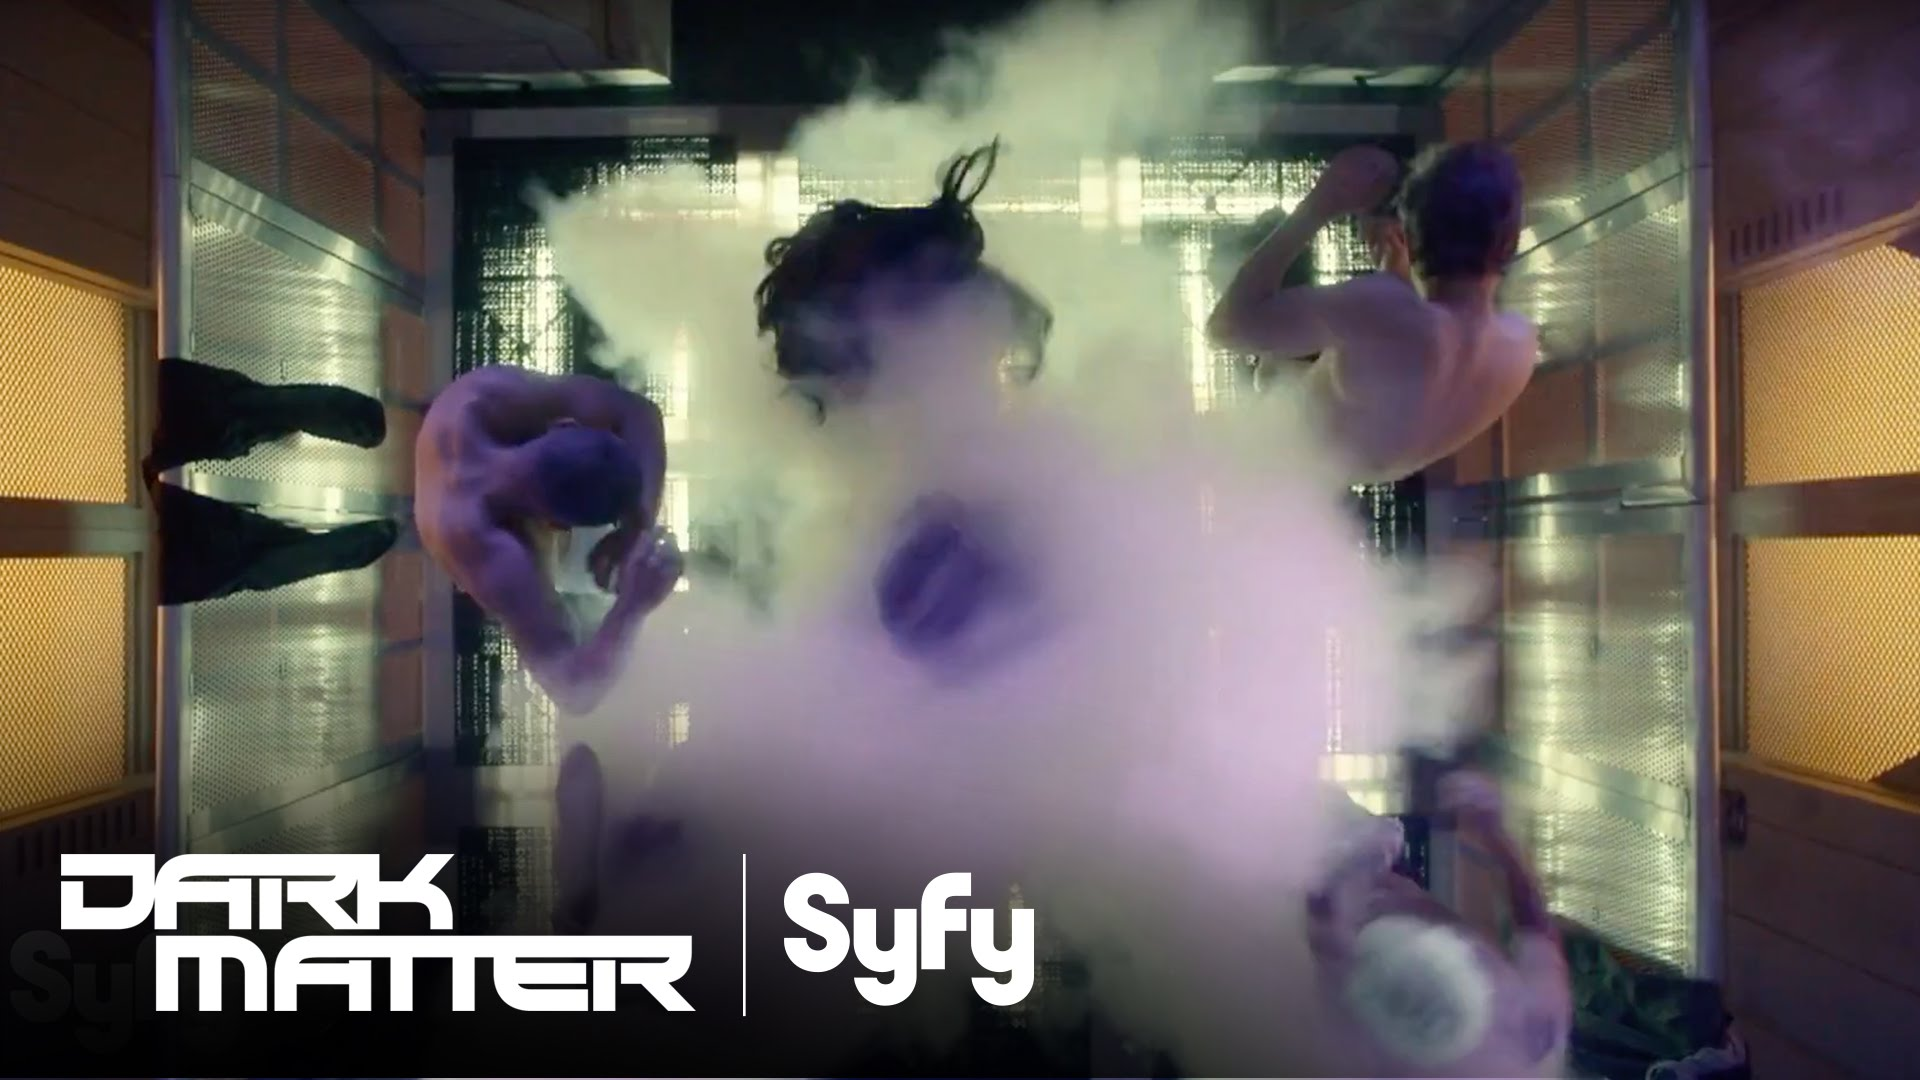 Syfy's series DARK MATTER Returns to San Diego Comic-Con this year with Panel and Signings!